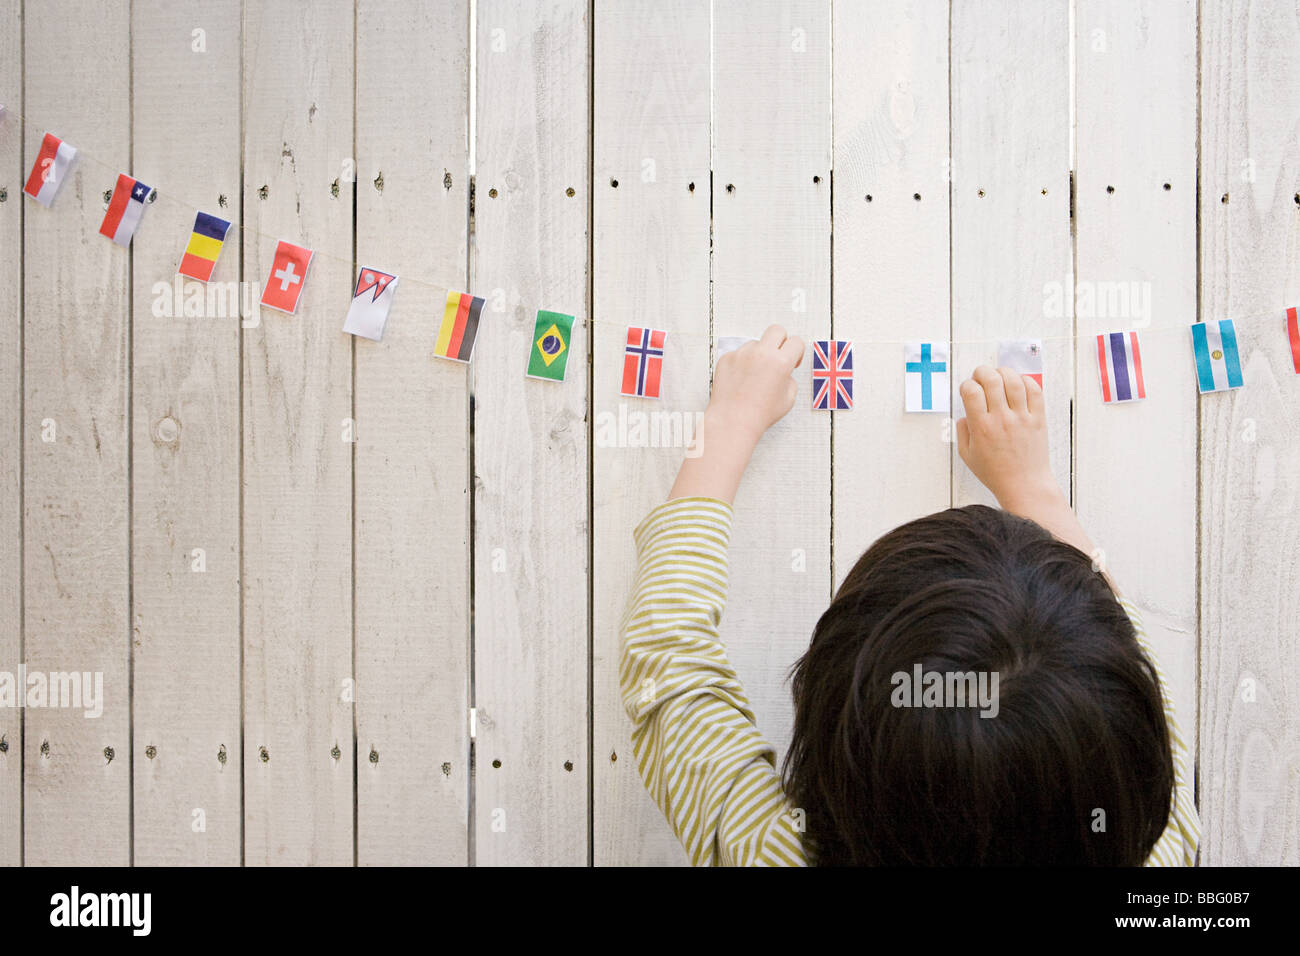 A boy reaching flags - Stock Image